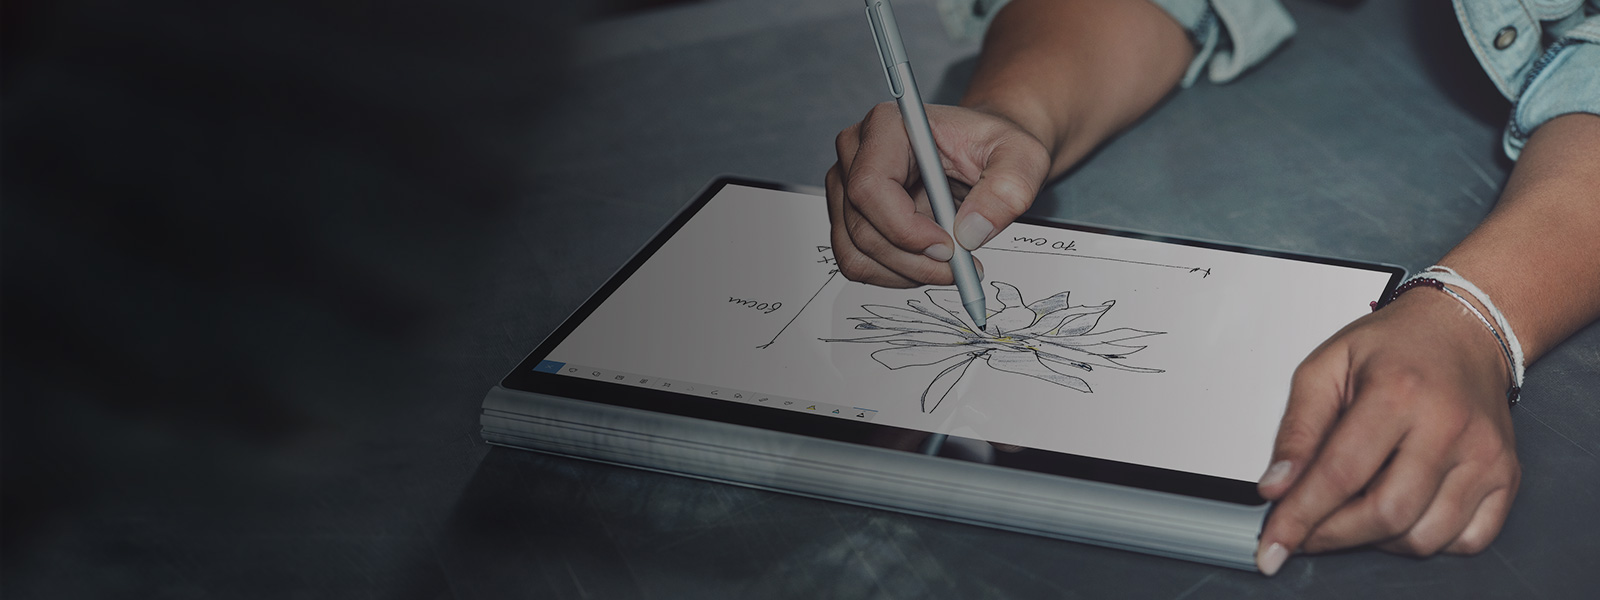 A digital pen draws on a PC screen